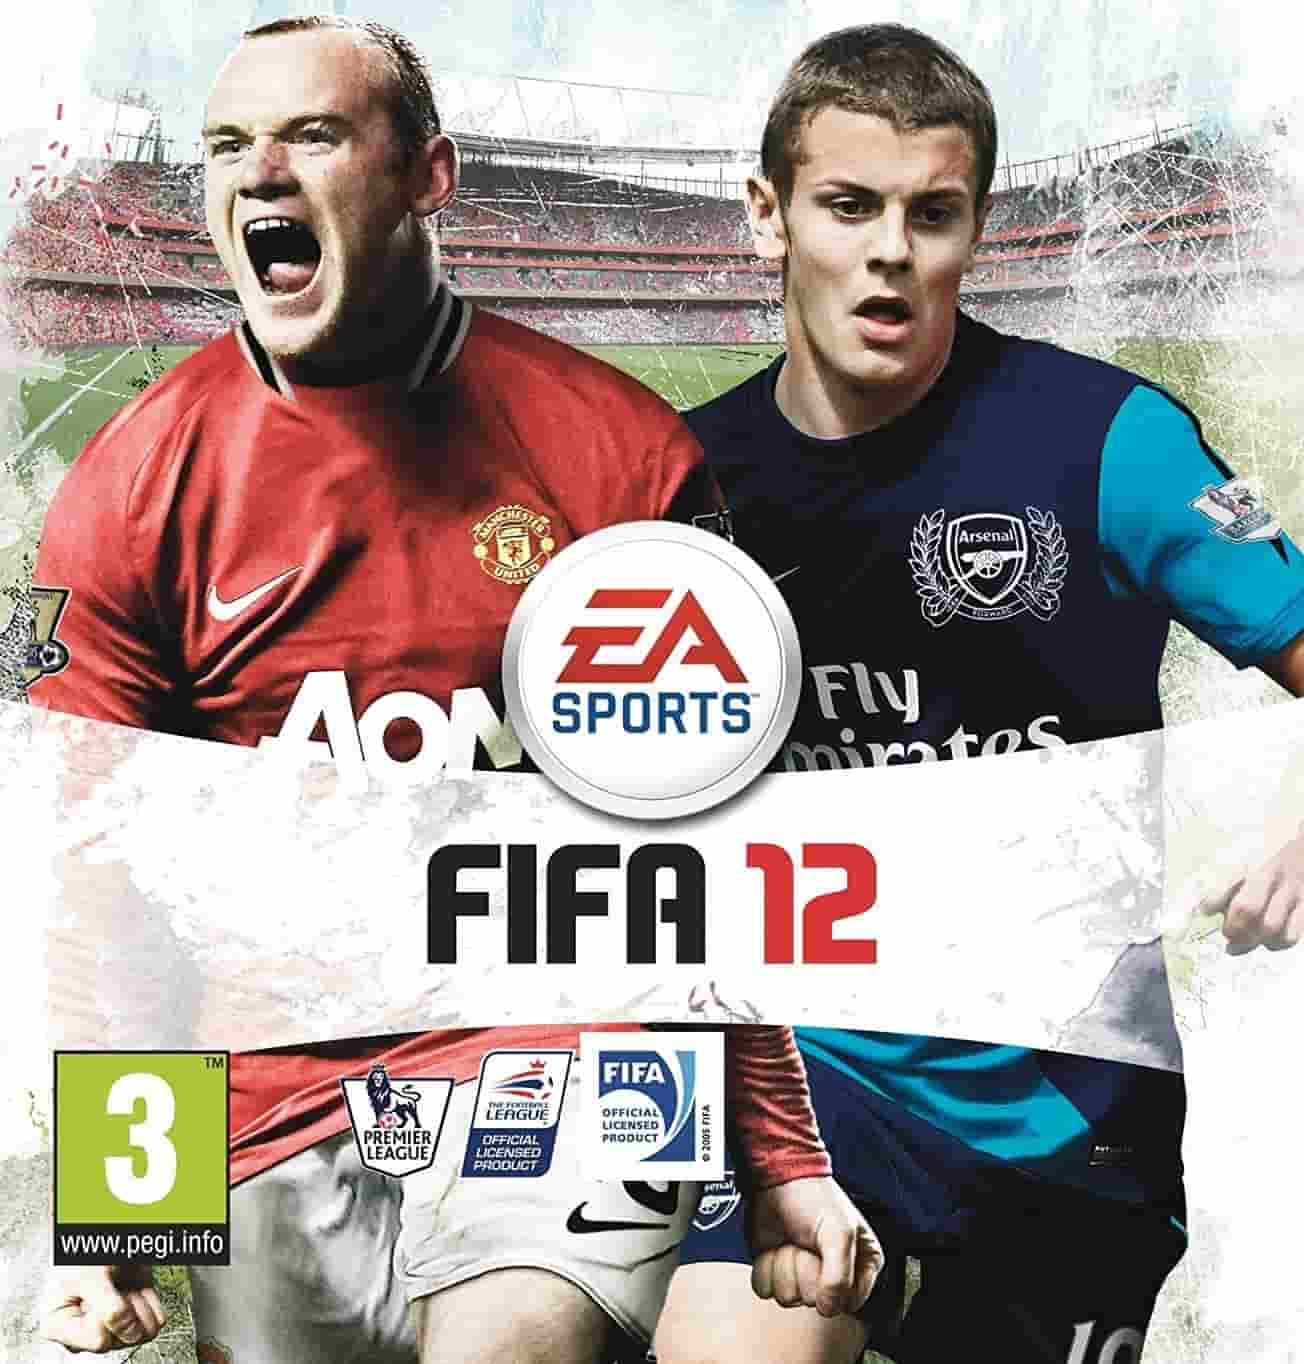 fifa 12 full game free download for pc